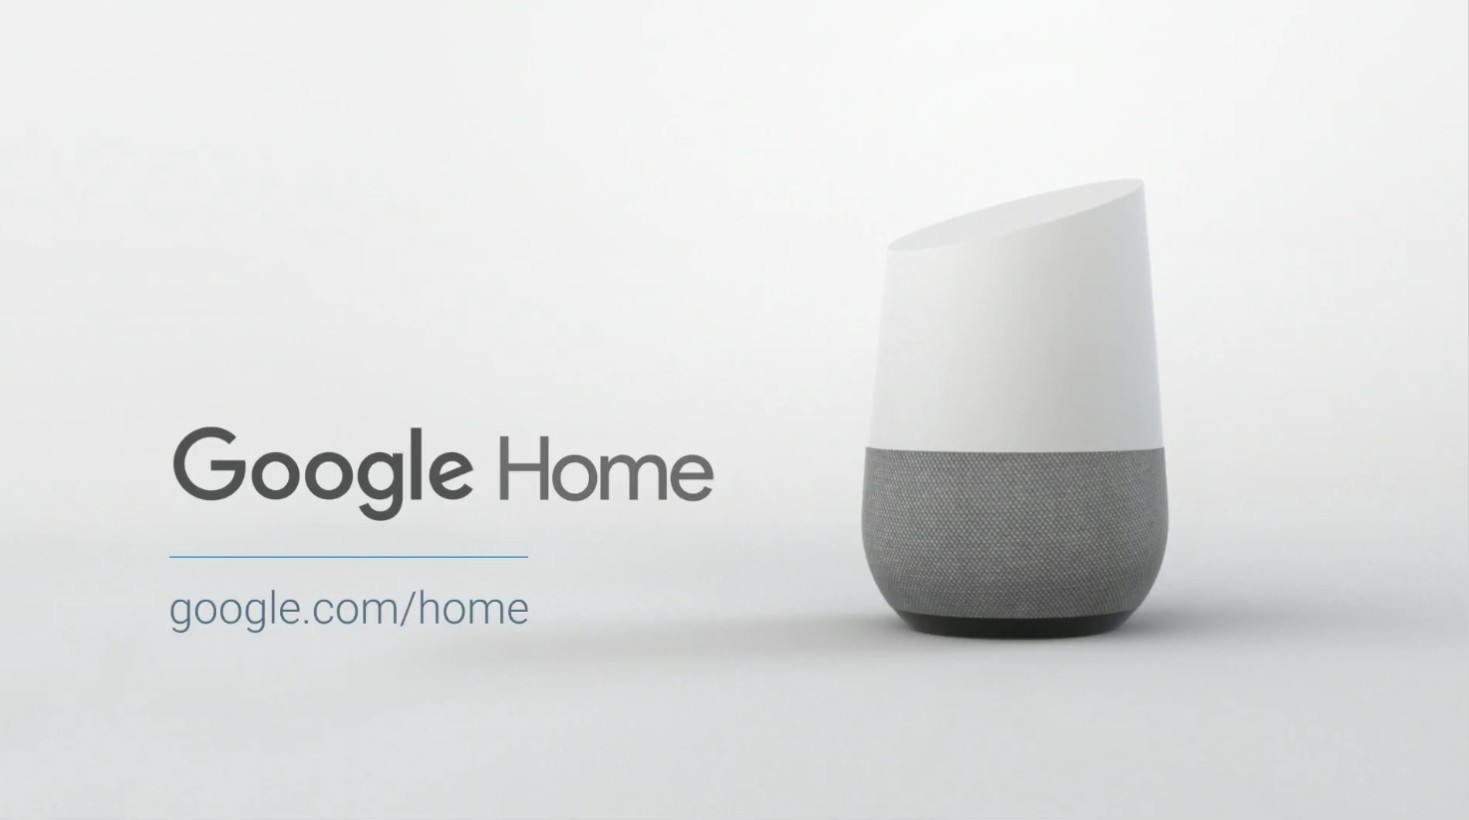 Google Home Aus Google Home Pricing And Availability Announced Not